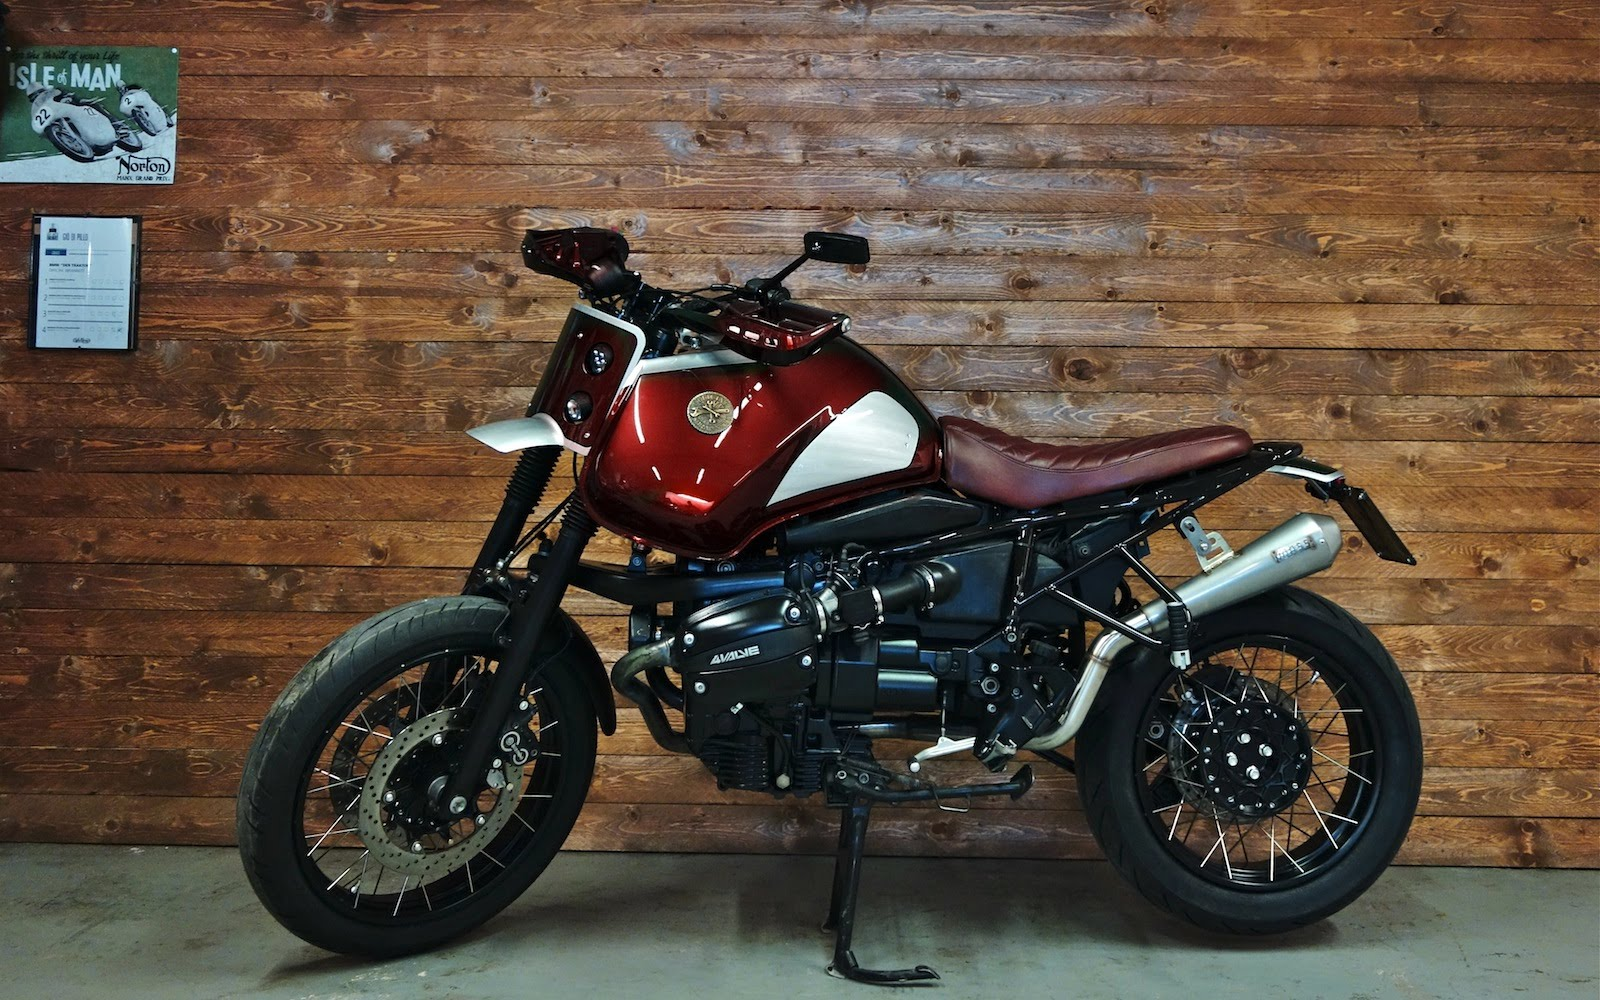 BMW R1100GS 1996 images #6478